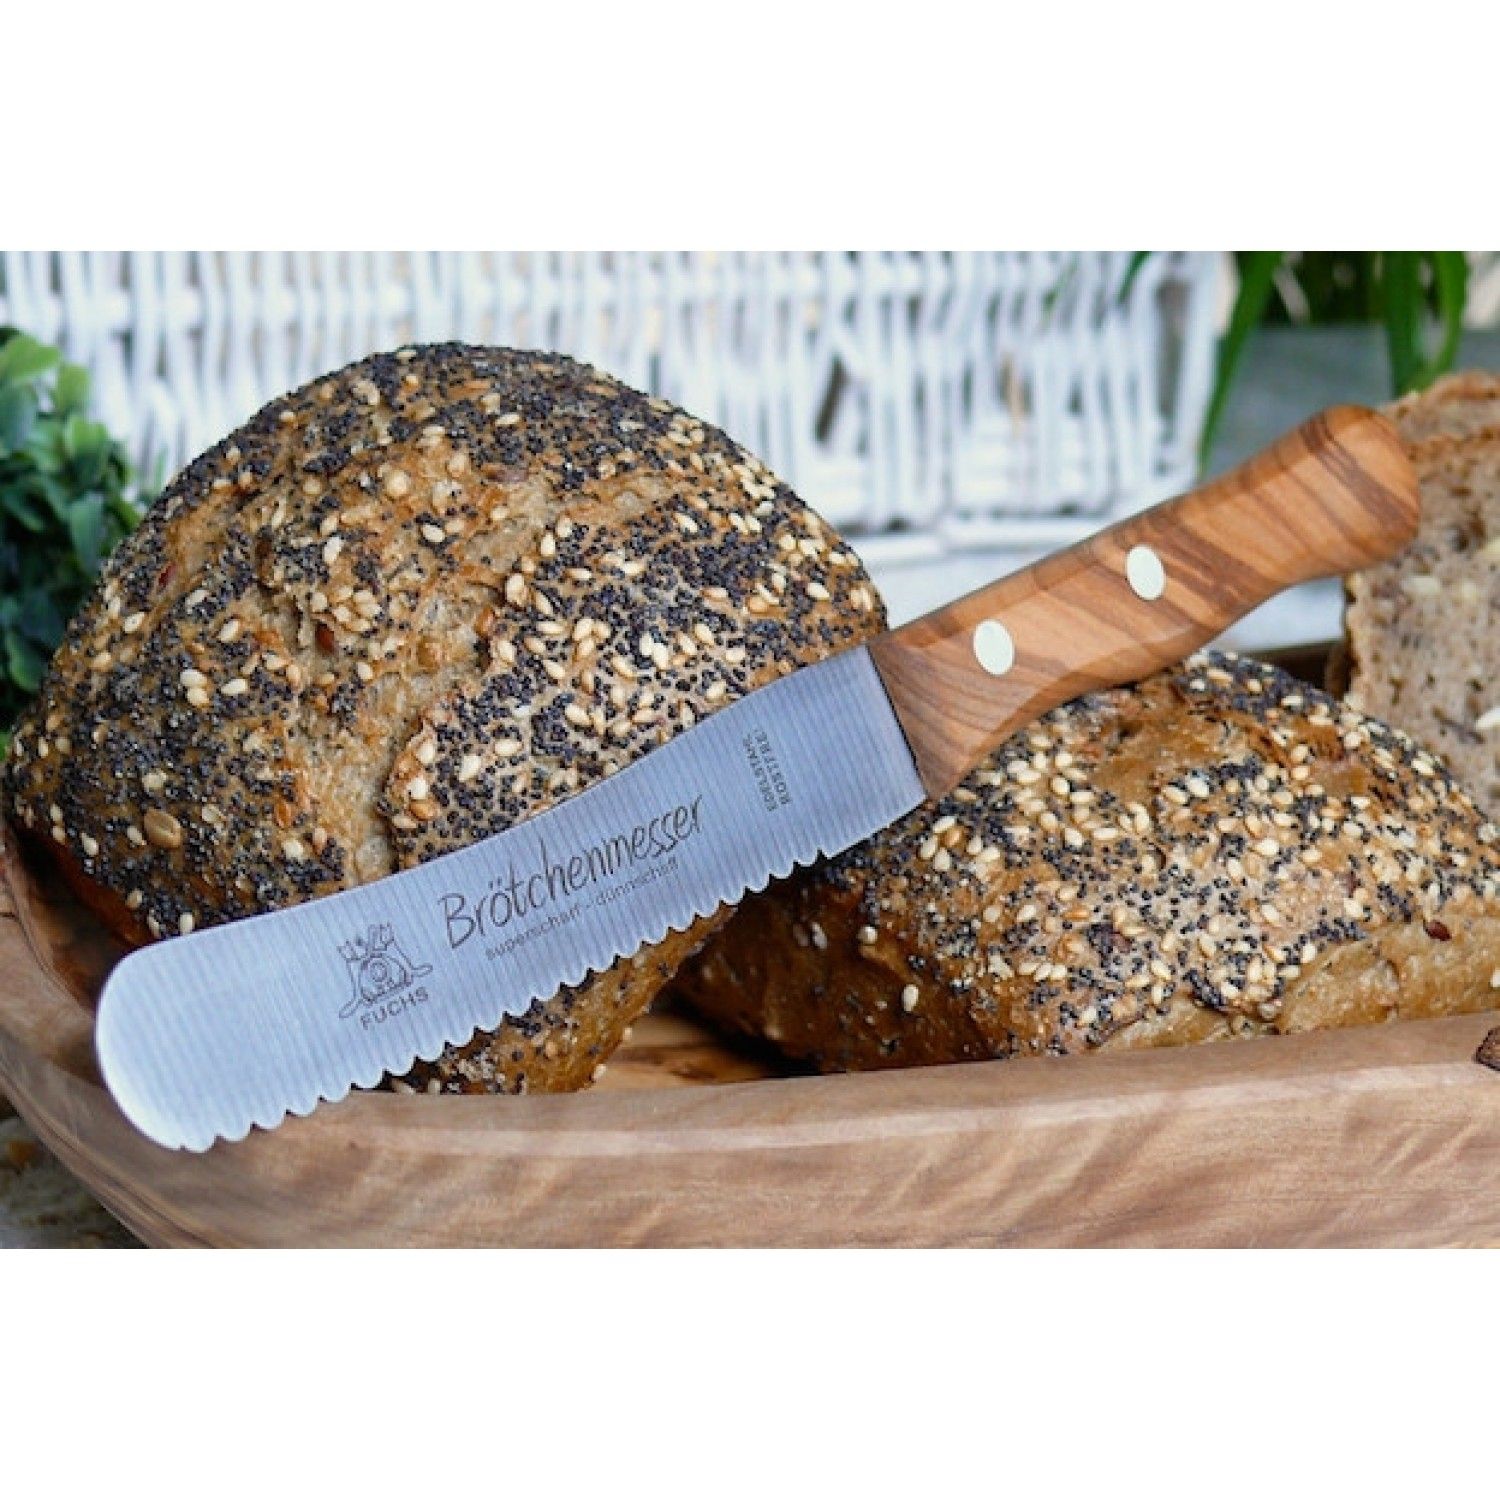 Butter Spreader & Bread Roll Knife Stainless Steel & Olive Wood